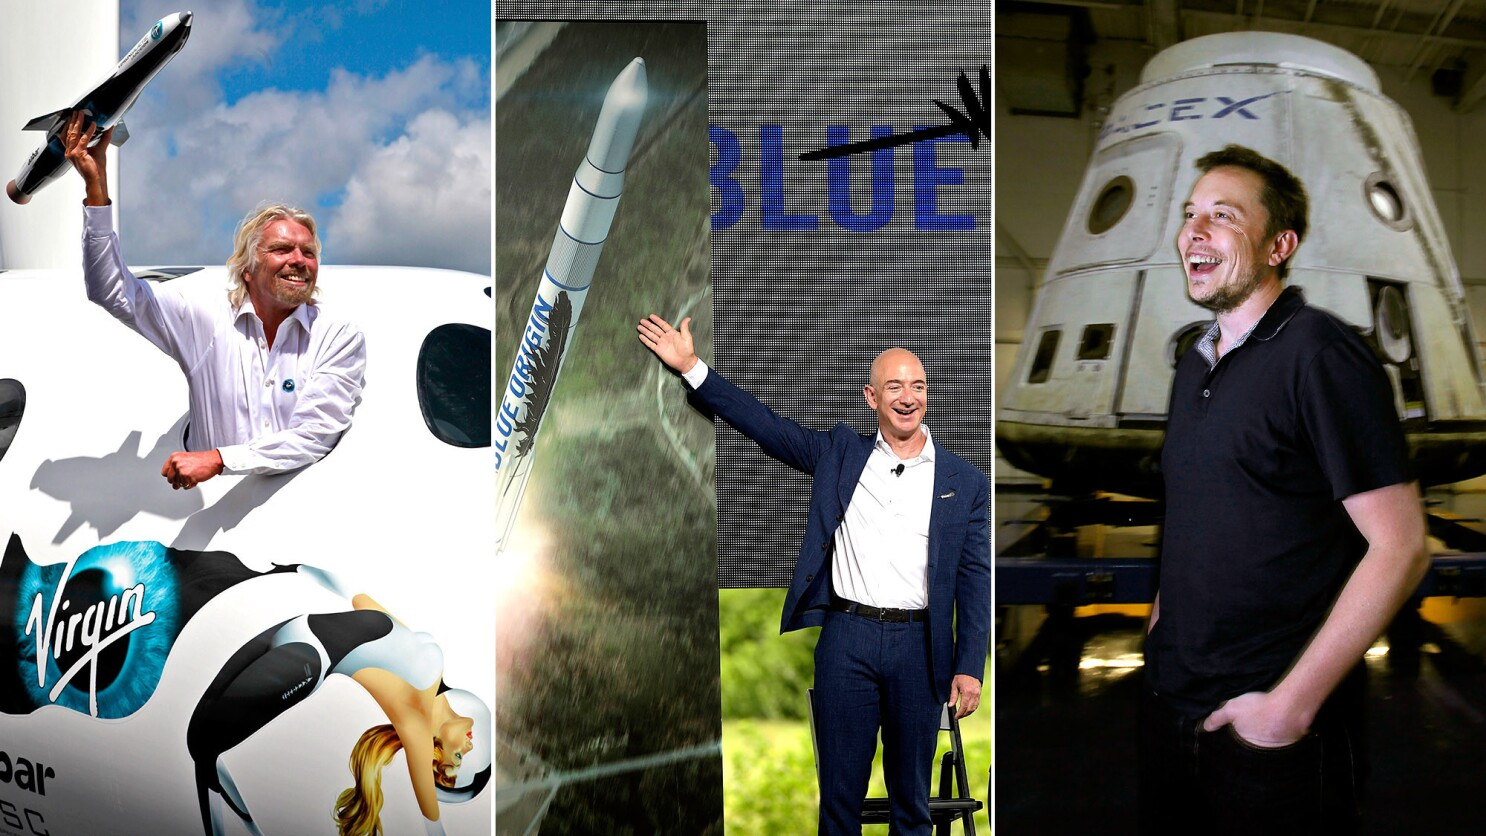 Why space? Battle of billionaires Bezos, Branson and Musk - Los Angeles  Times